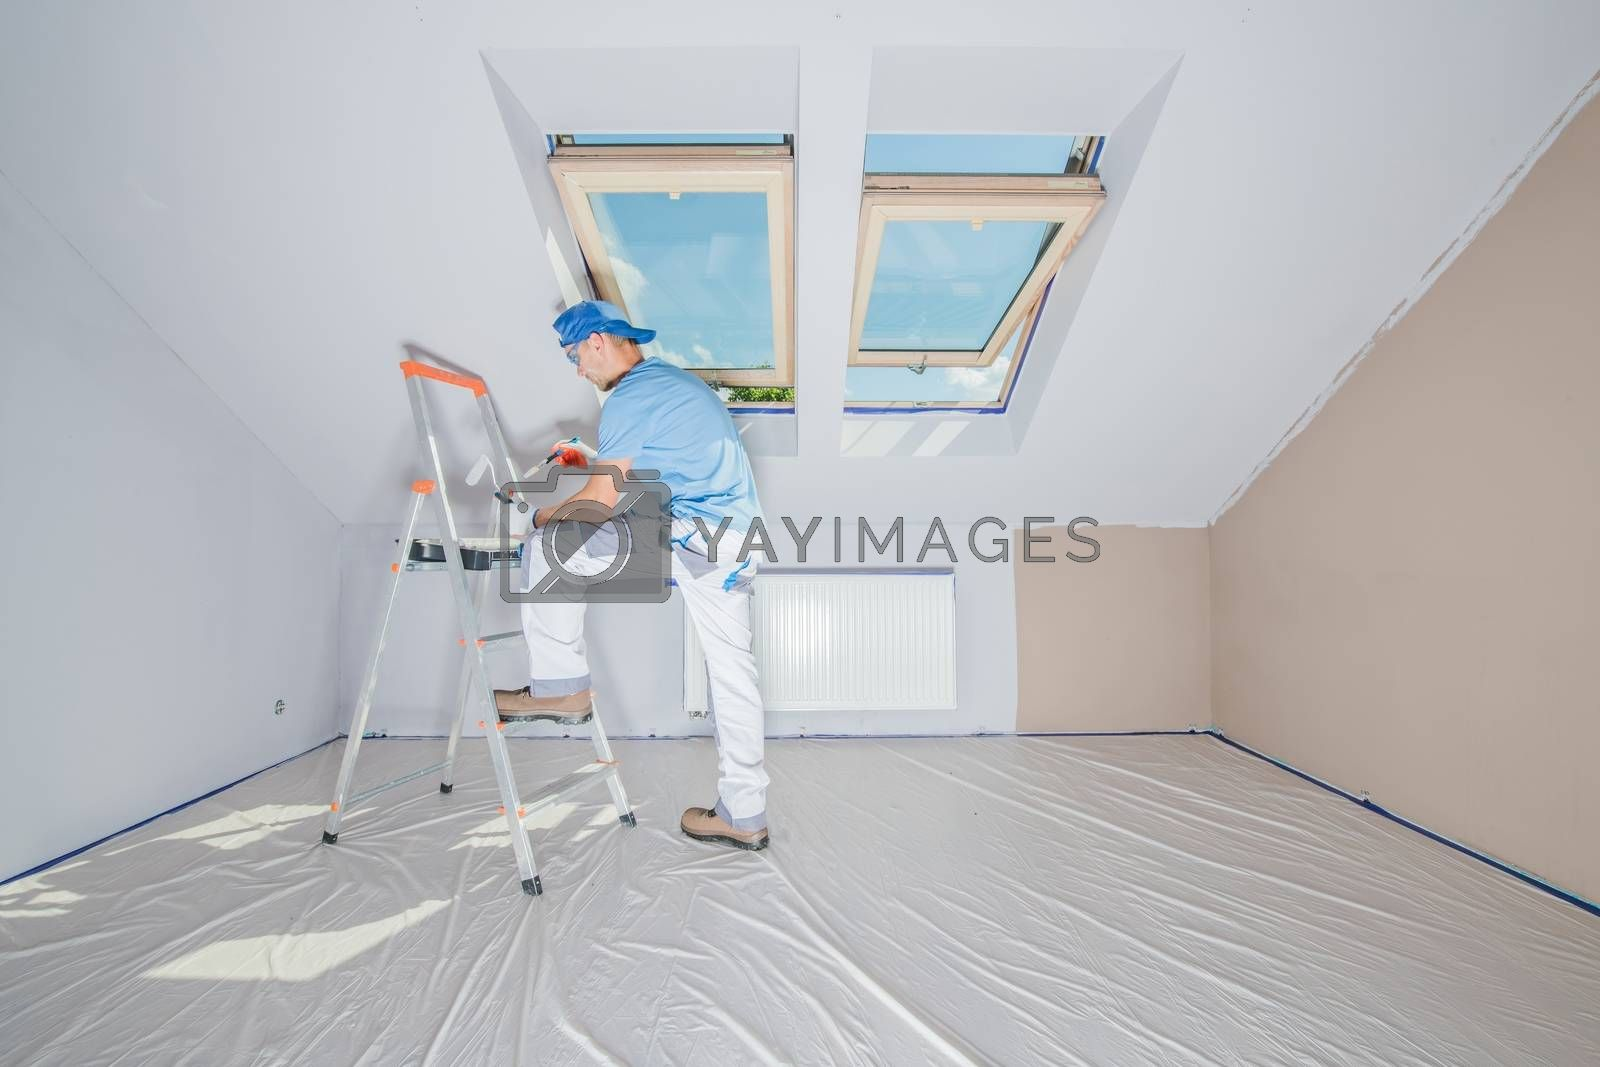 Royalty free image of Repainting Home Interior by welcomia